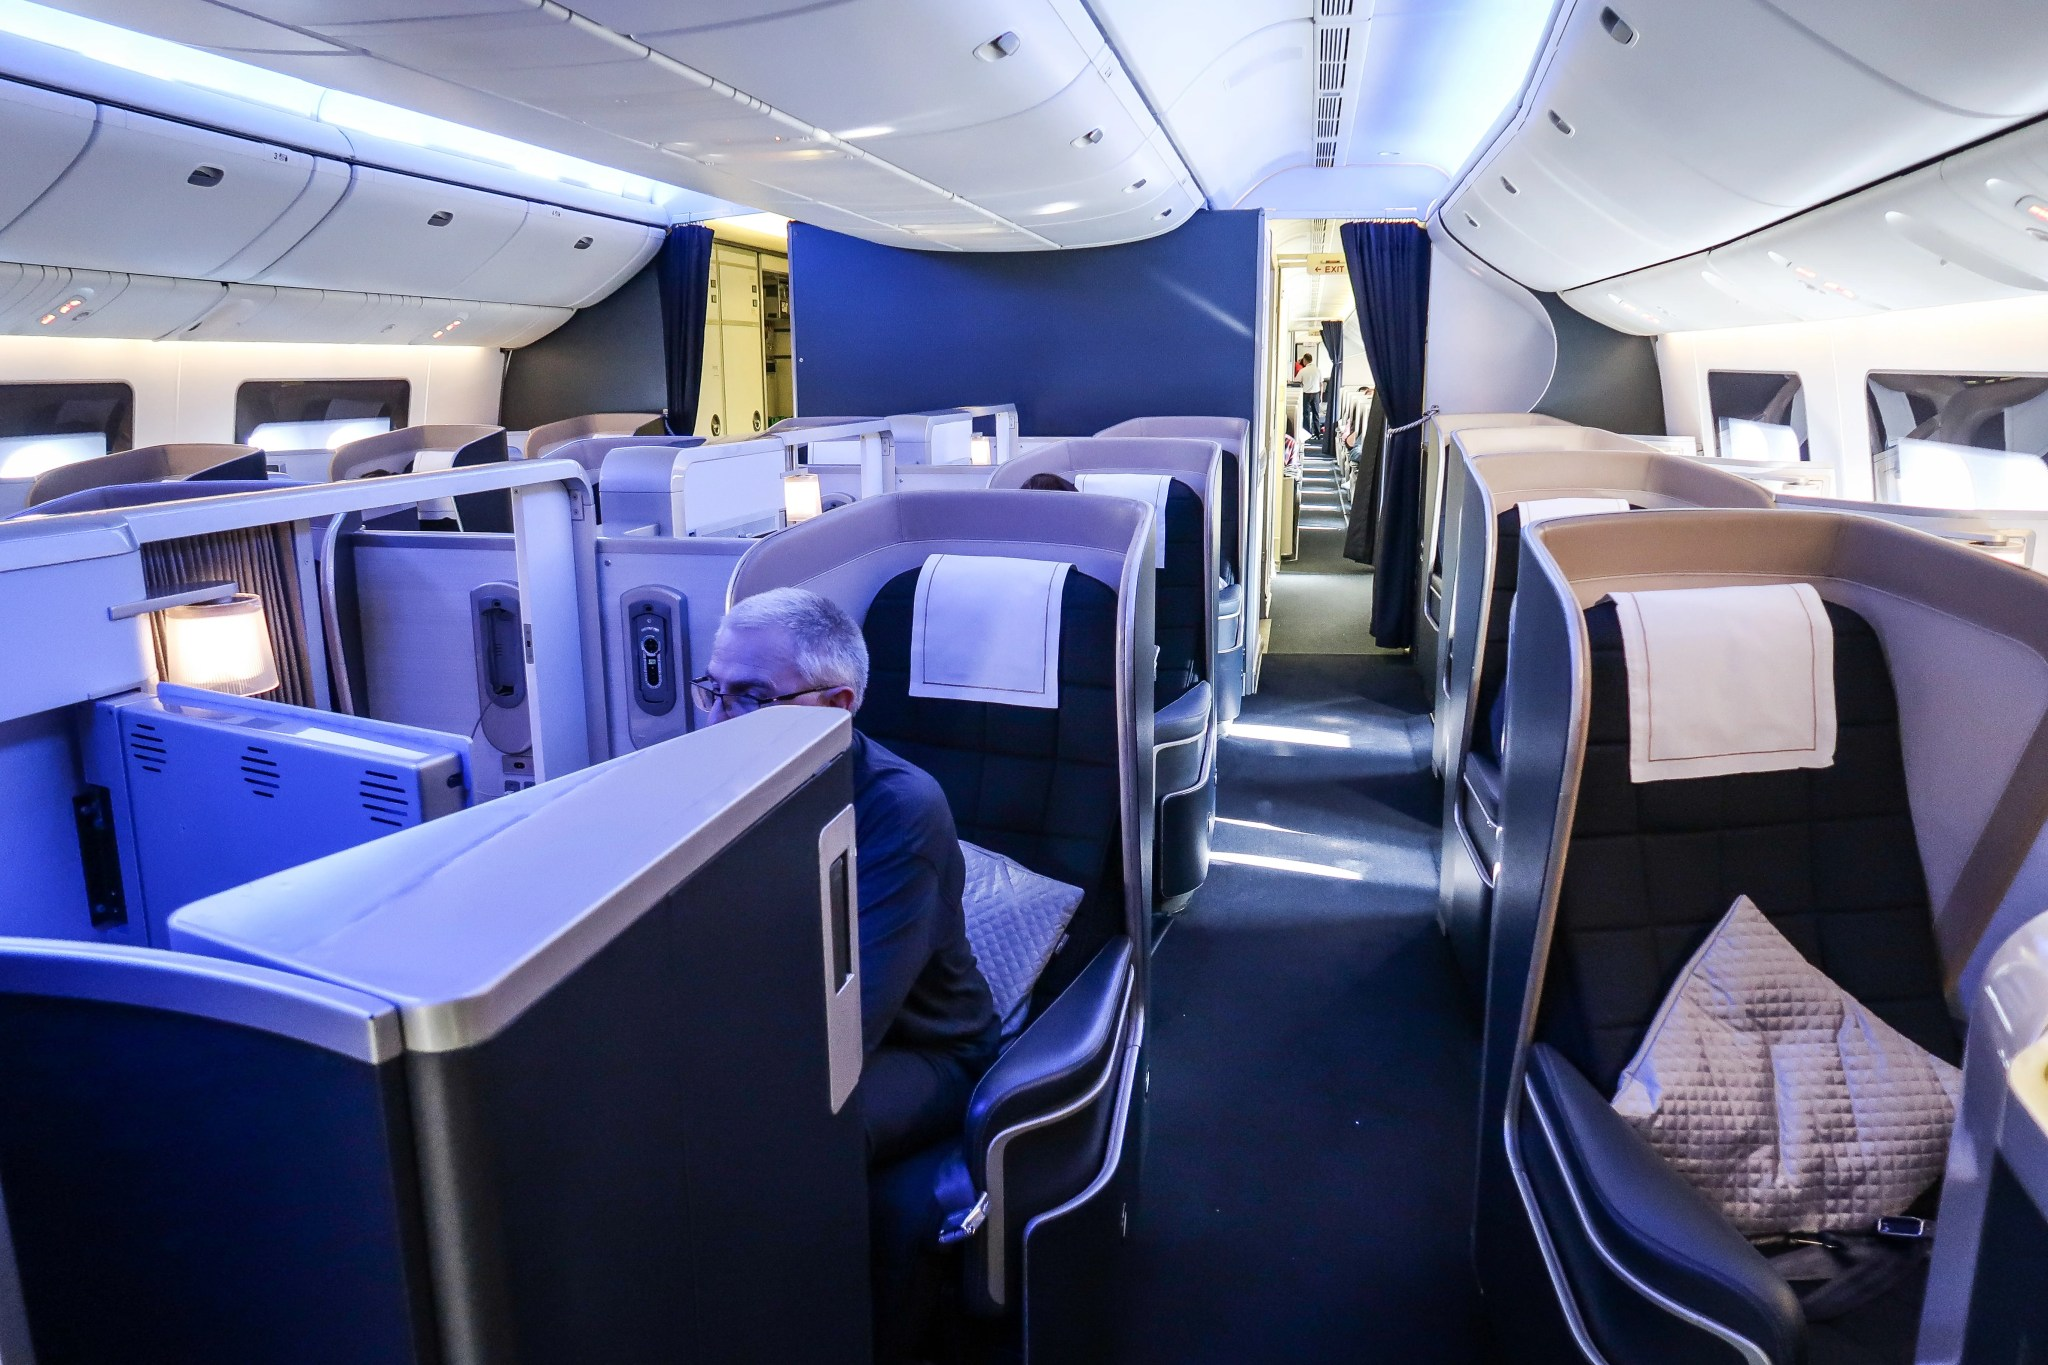 Review: British Airways First Class on the 777 LHR-AUH